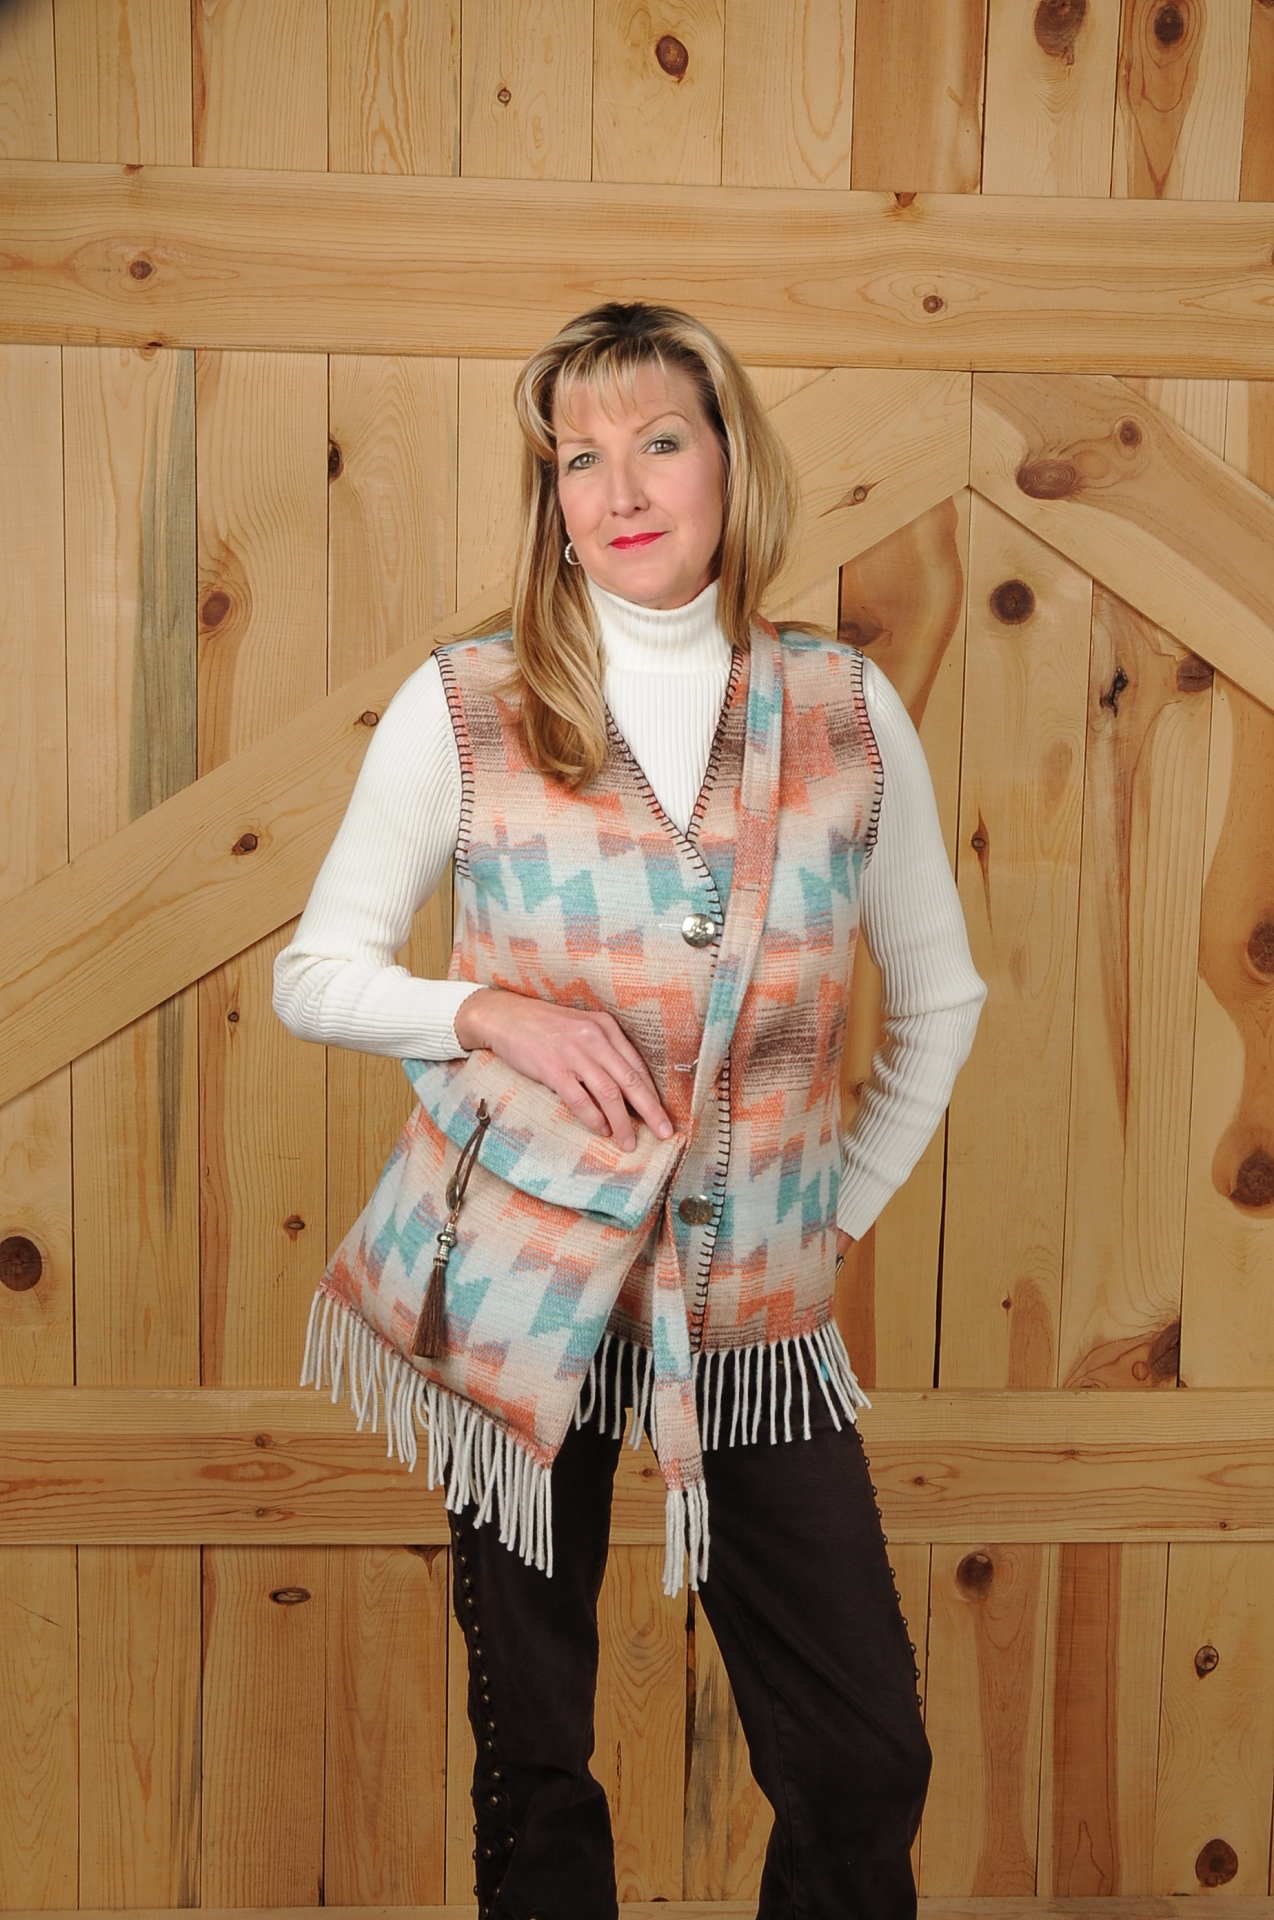 121HSF - HARVEST SKY FRINGE V-NECK VEST                      (no pockets) - $79.95